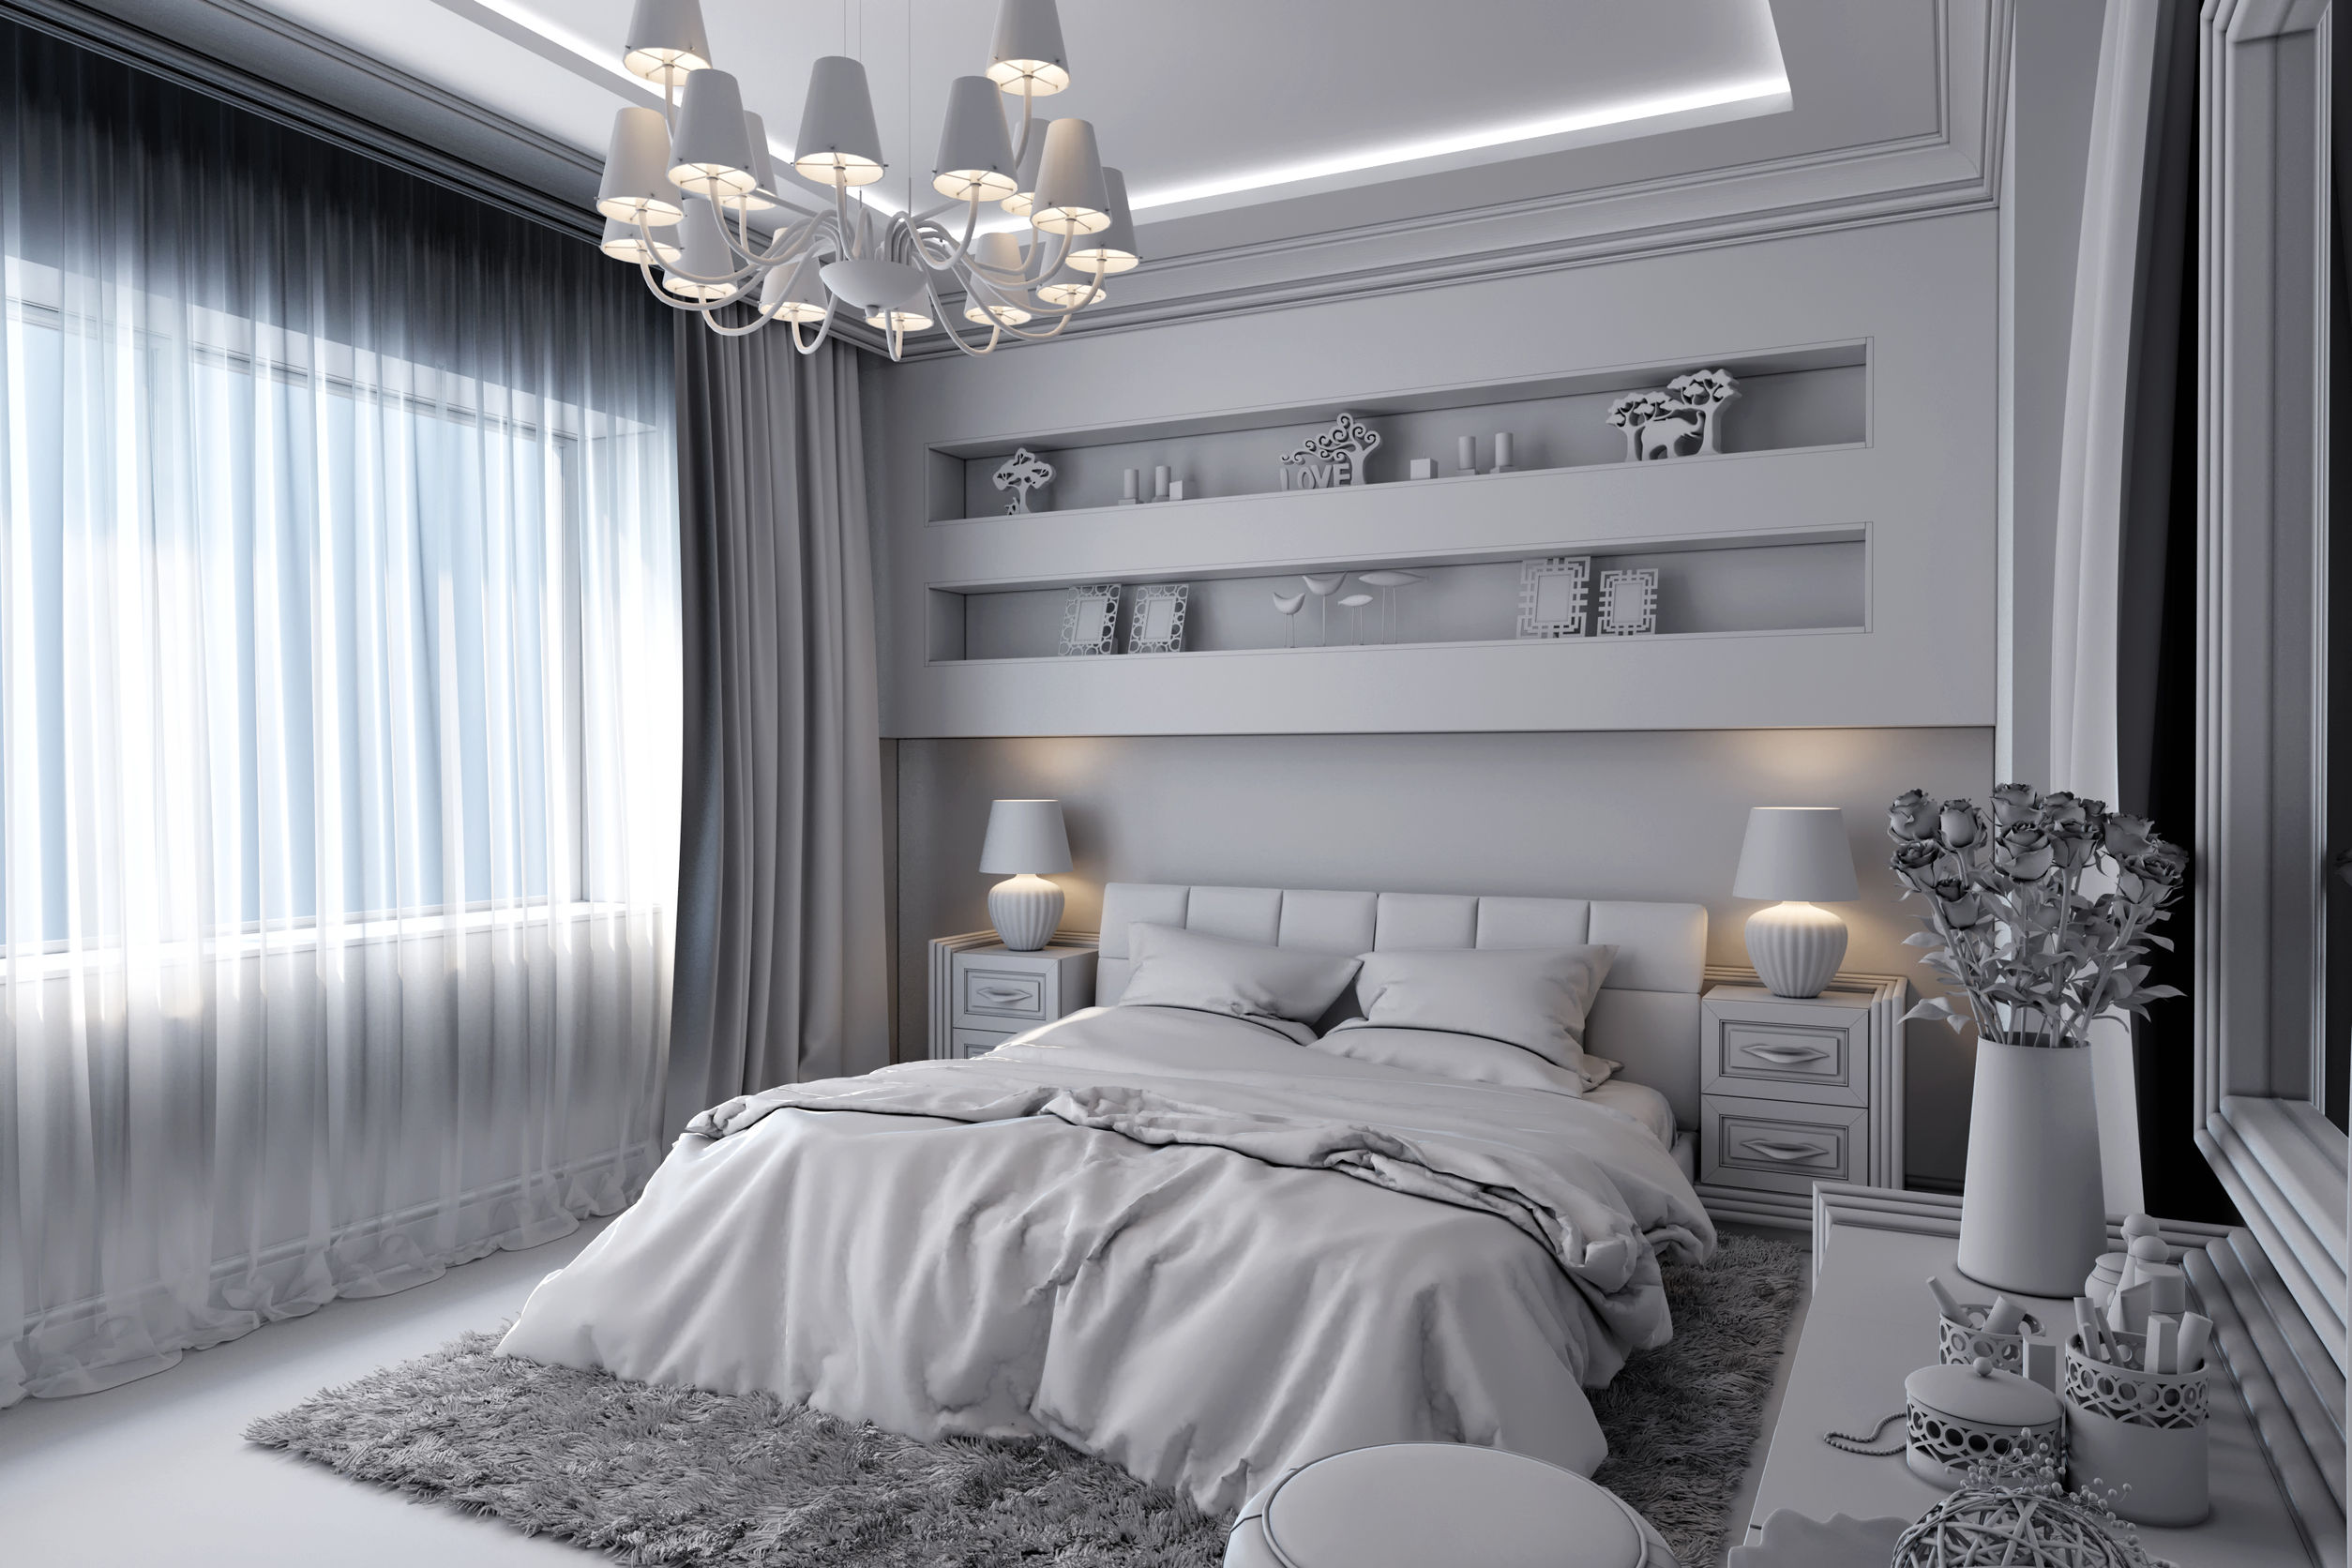 49154829 - 3d render of a white bedroom in classical style